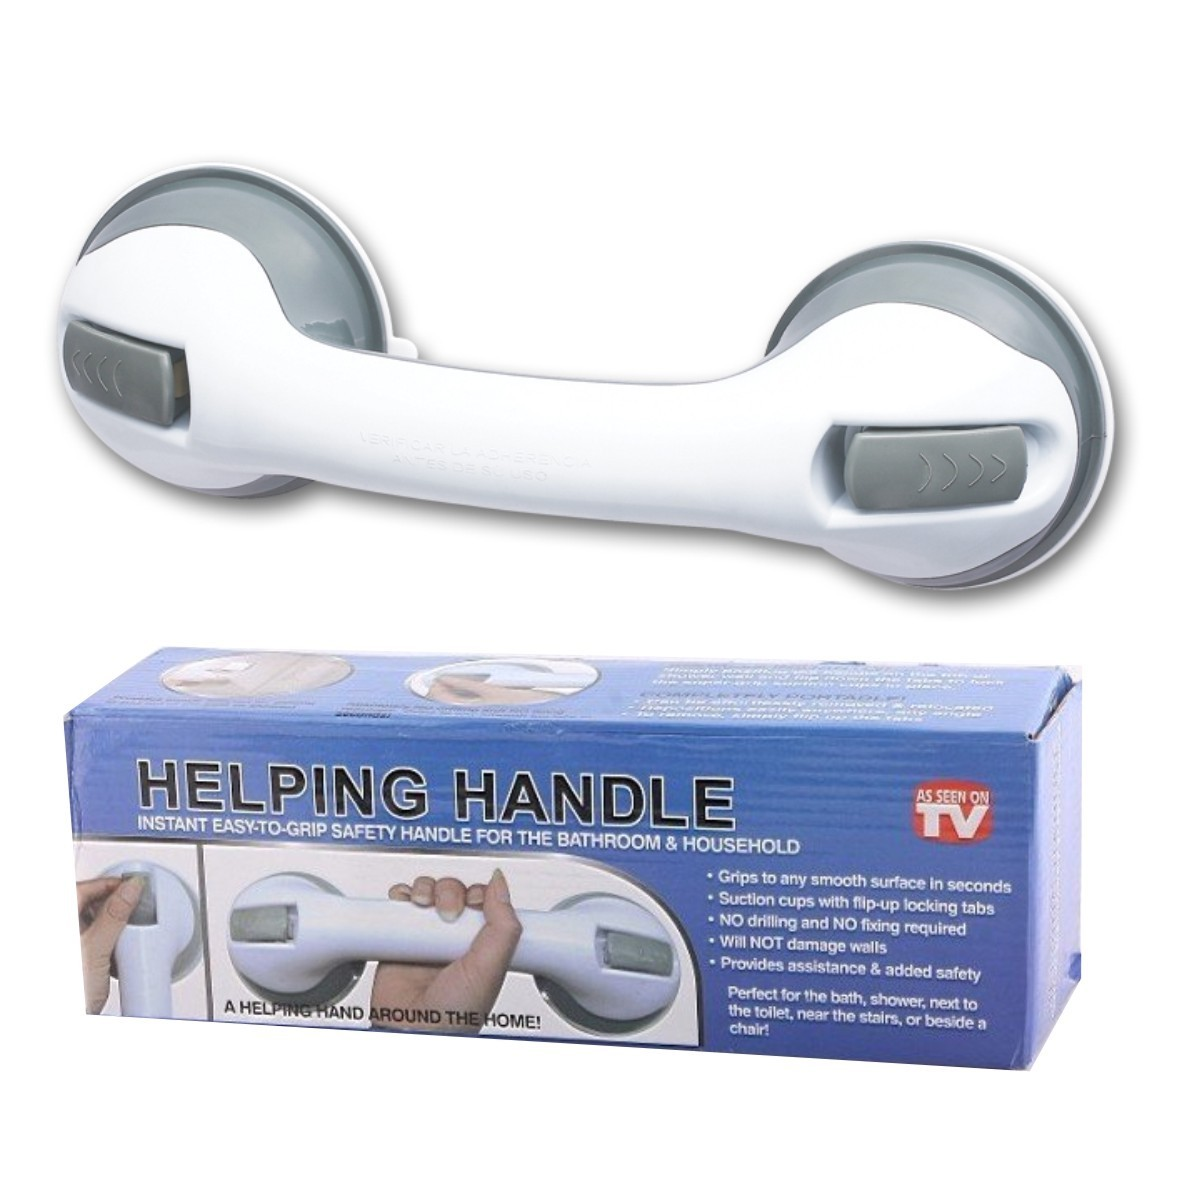 Agarradera manija de seguridad heping handle ideal para ba o for Manija para taza de bano